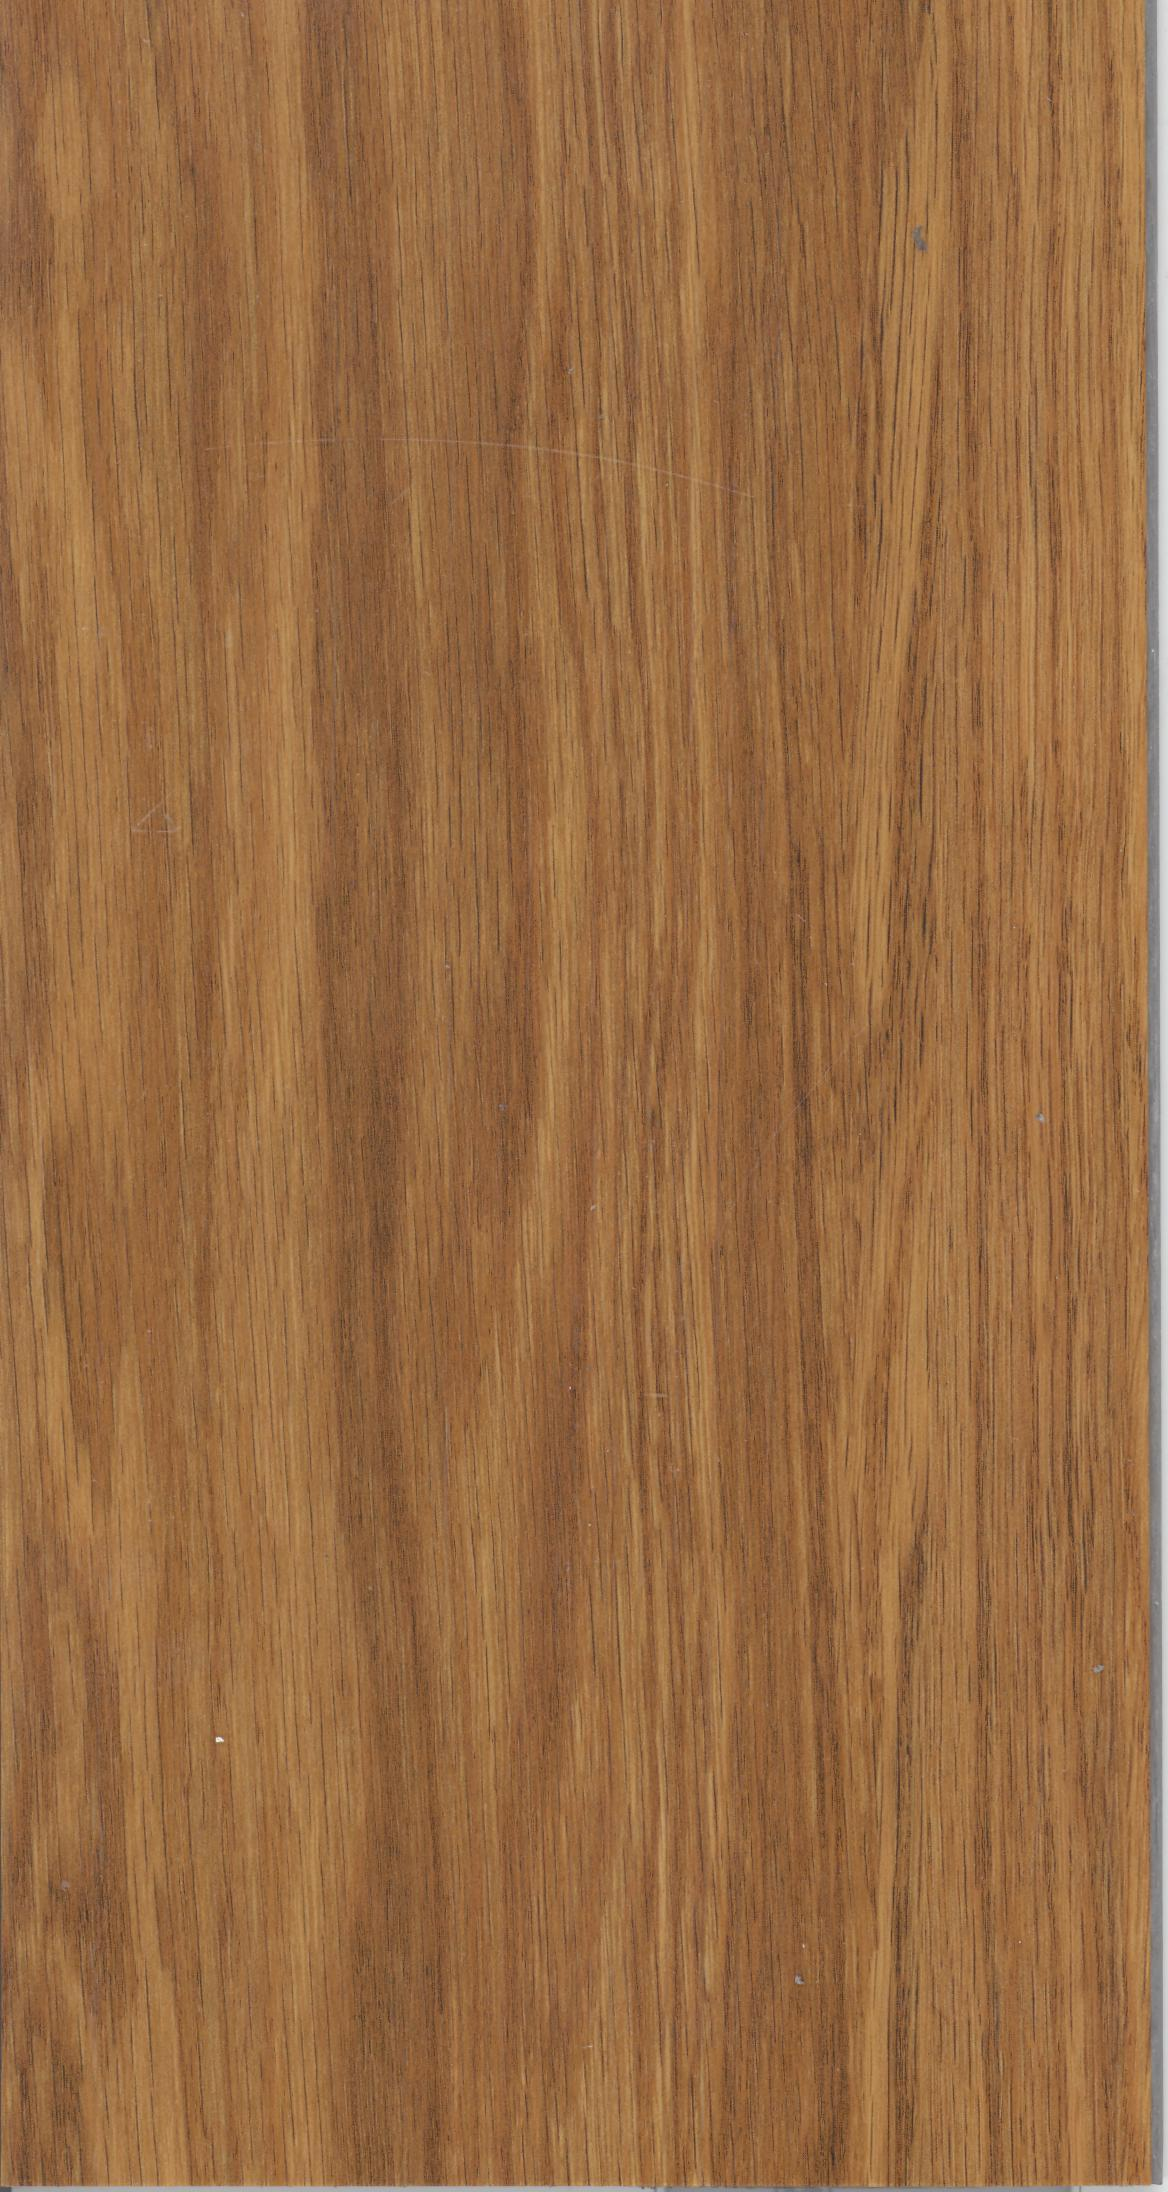 Top 28 Flooring Discount Laminate Flooring Laminate Floors At Discount Prices Floor